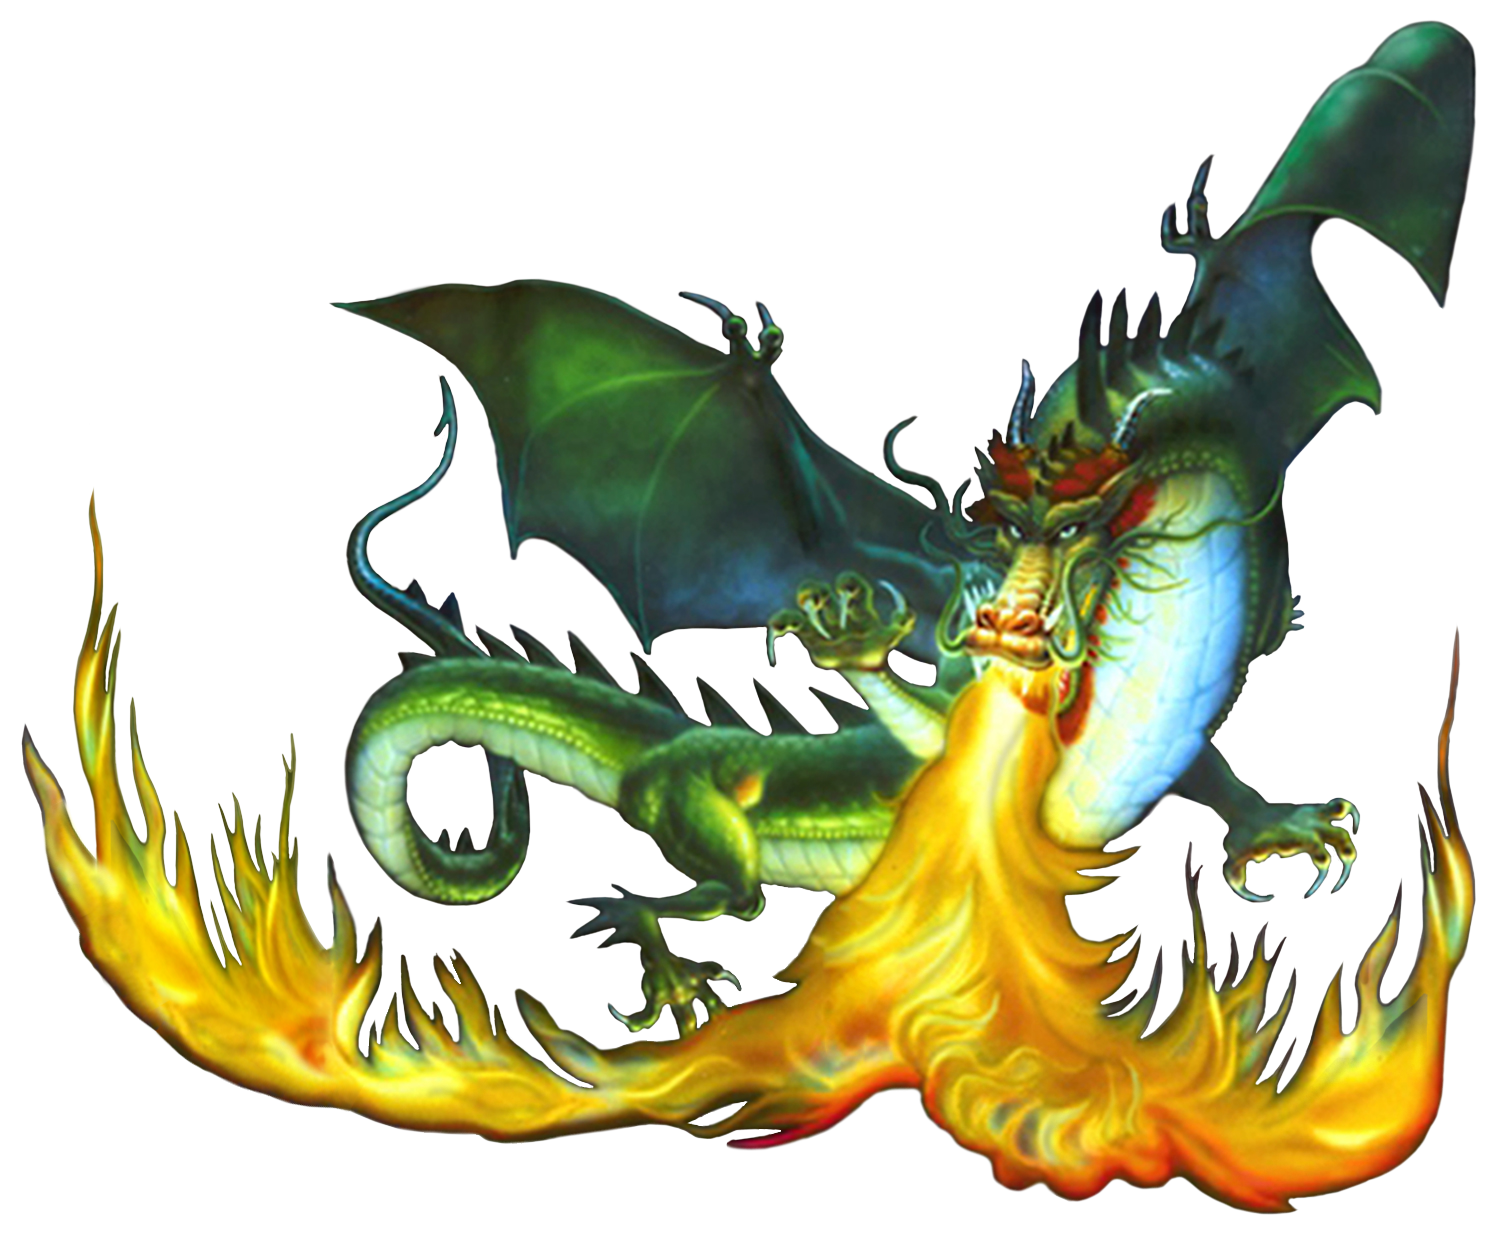 Tba clipart clipart black and white download TBA*: Fire Breathing Dragon - Clip Art Library clipart black and white download